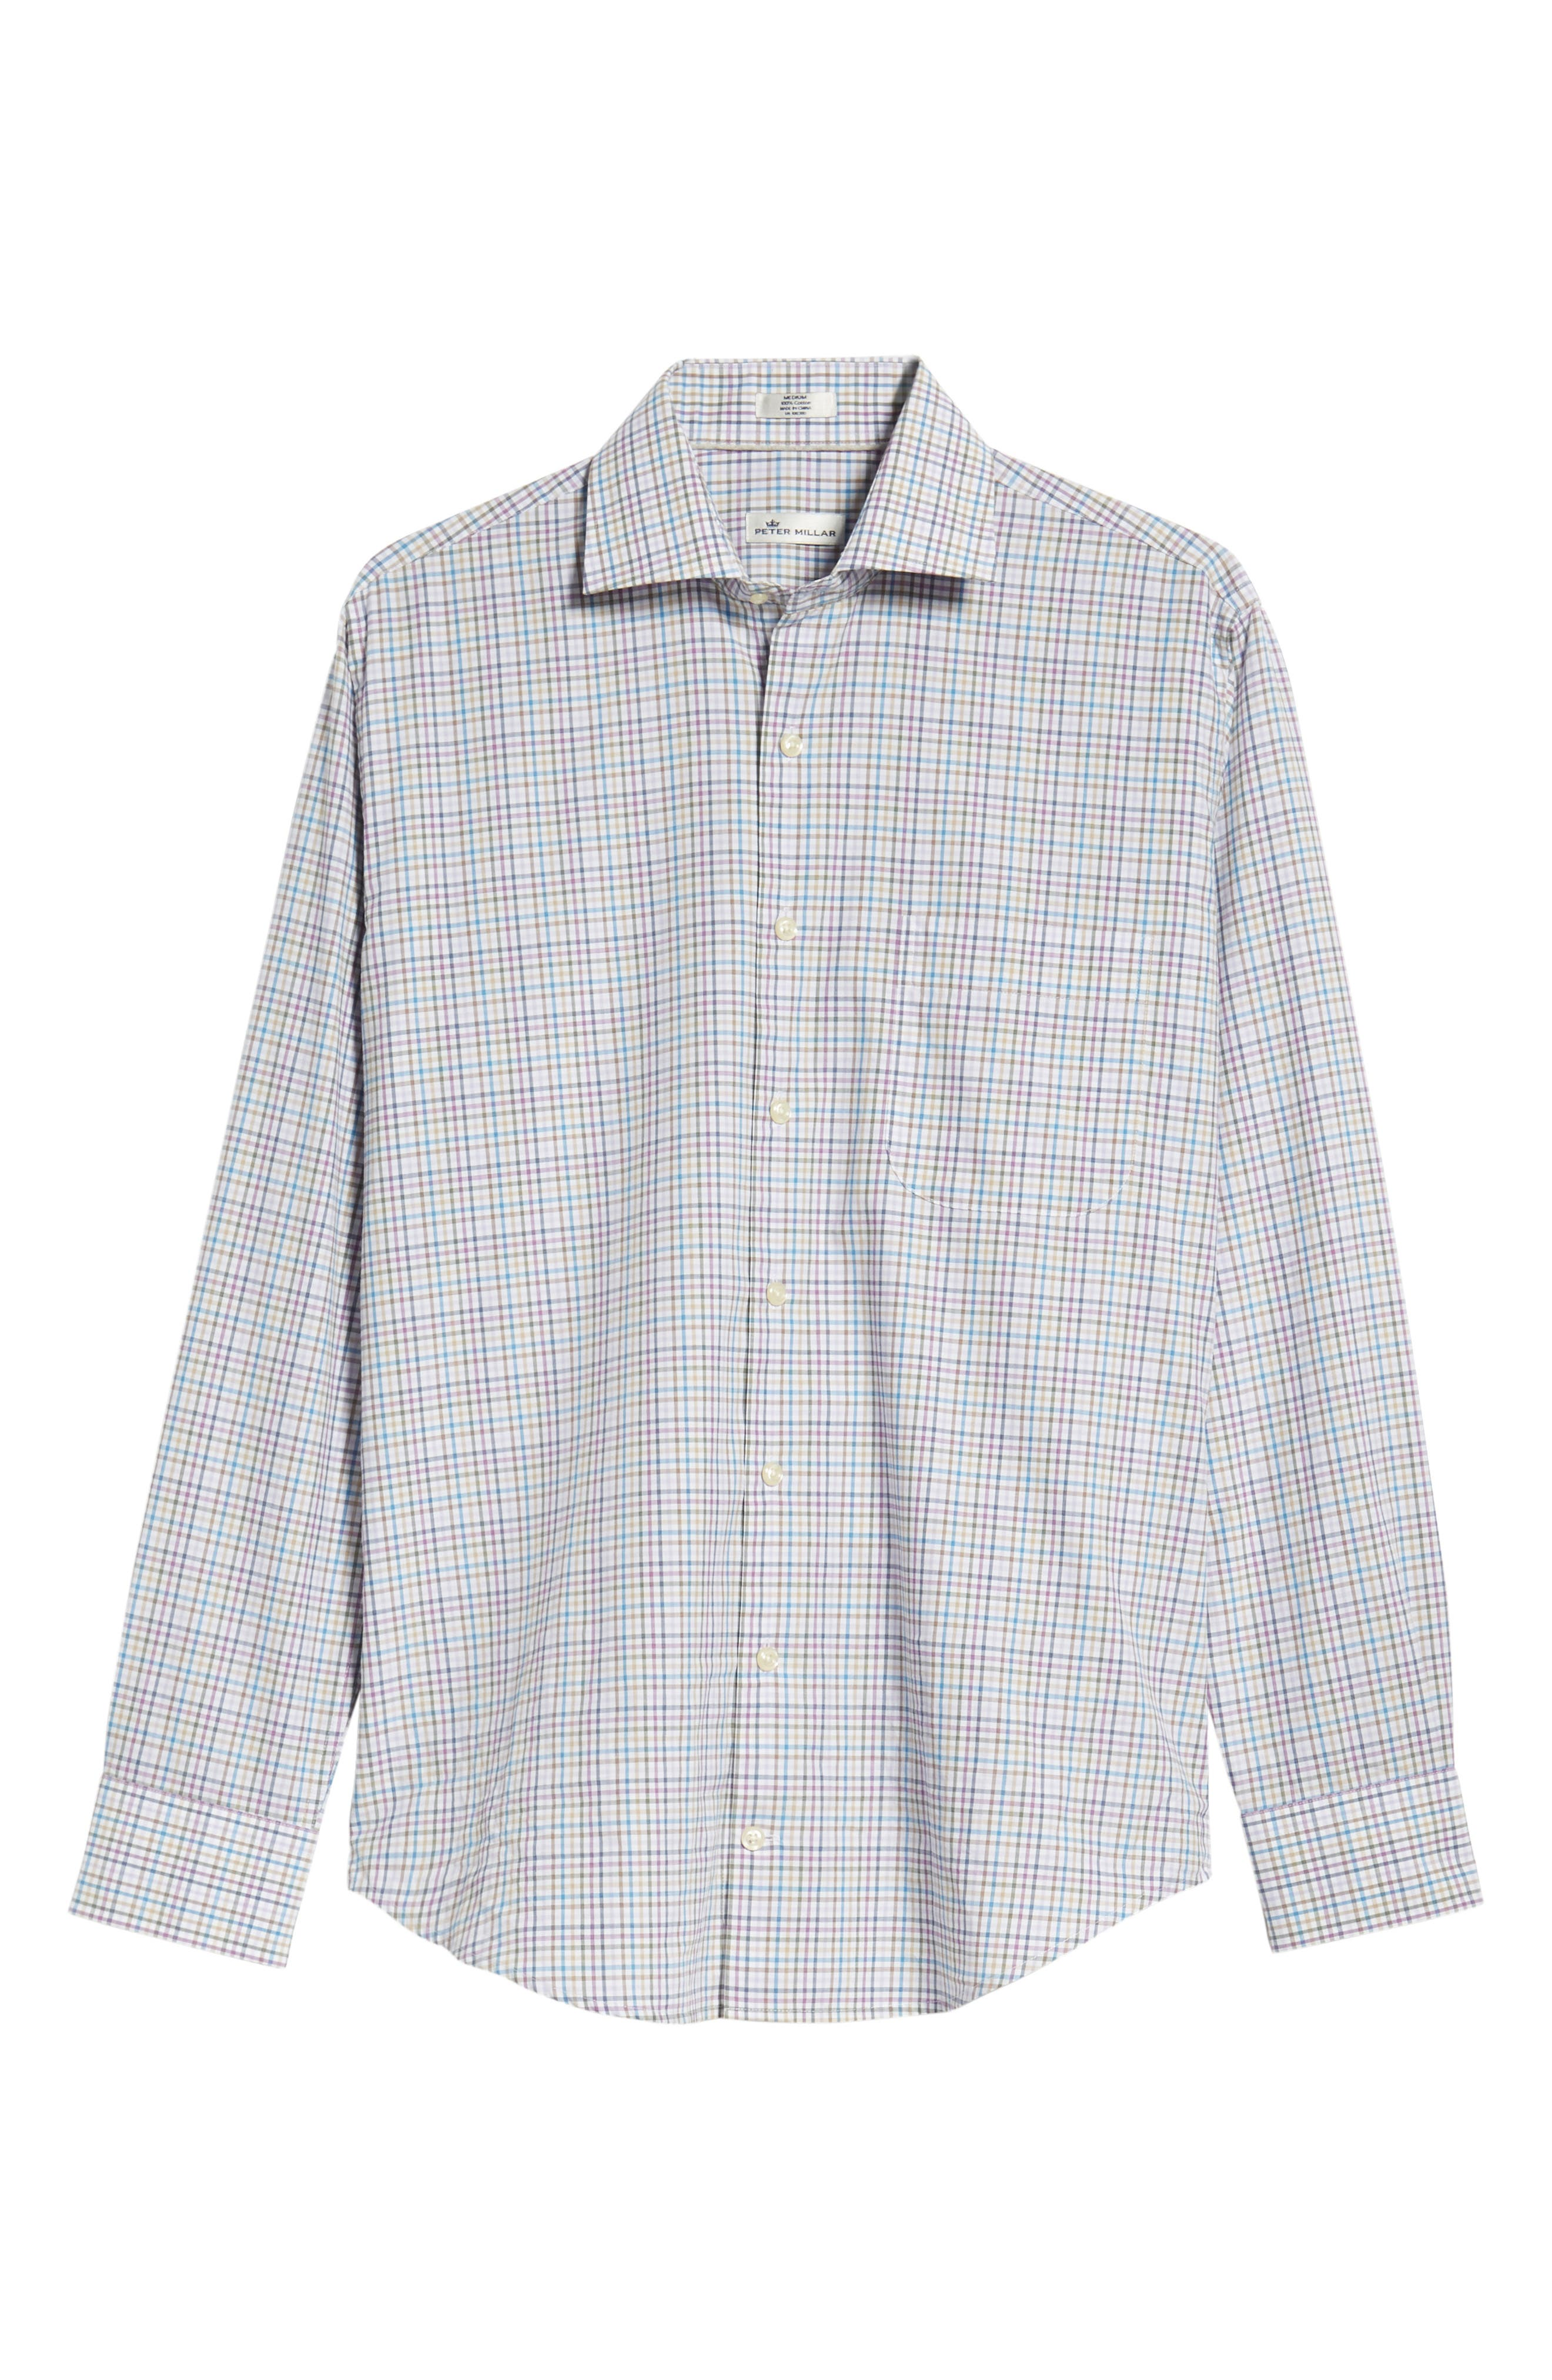 Whittier Heights Check Sport Shirt,                             Alternate thumbnail 5, color,                             BEET